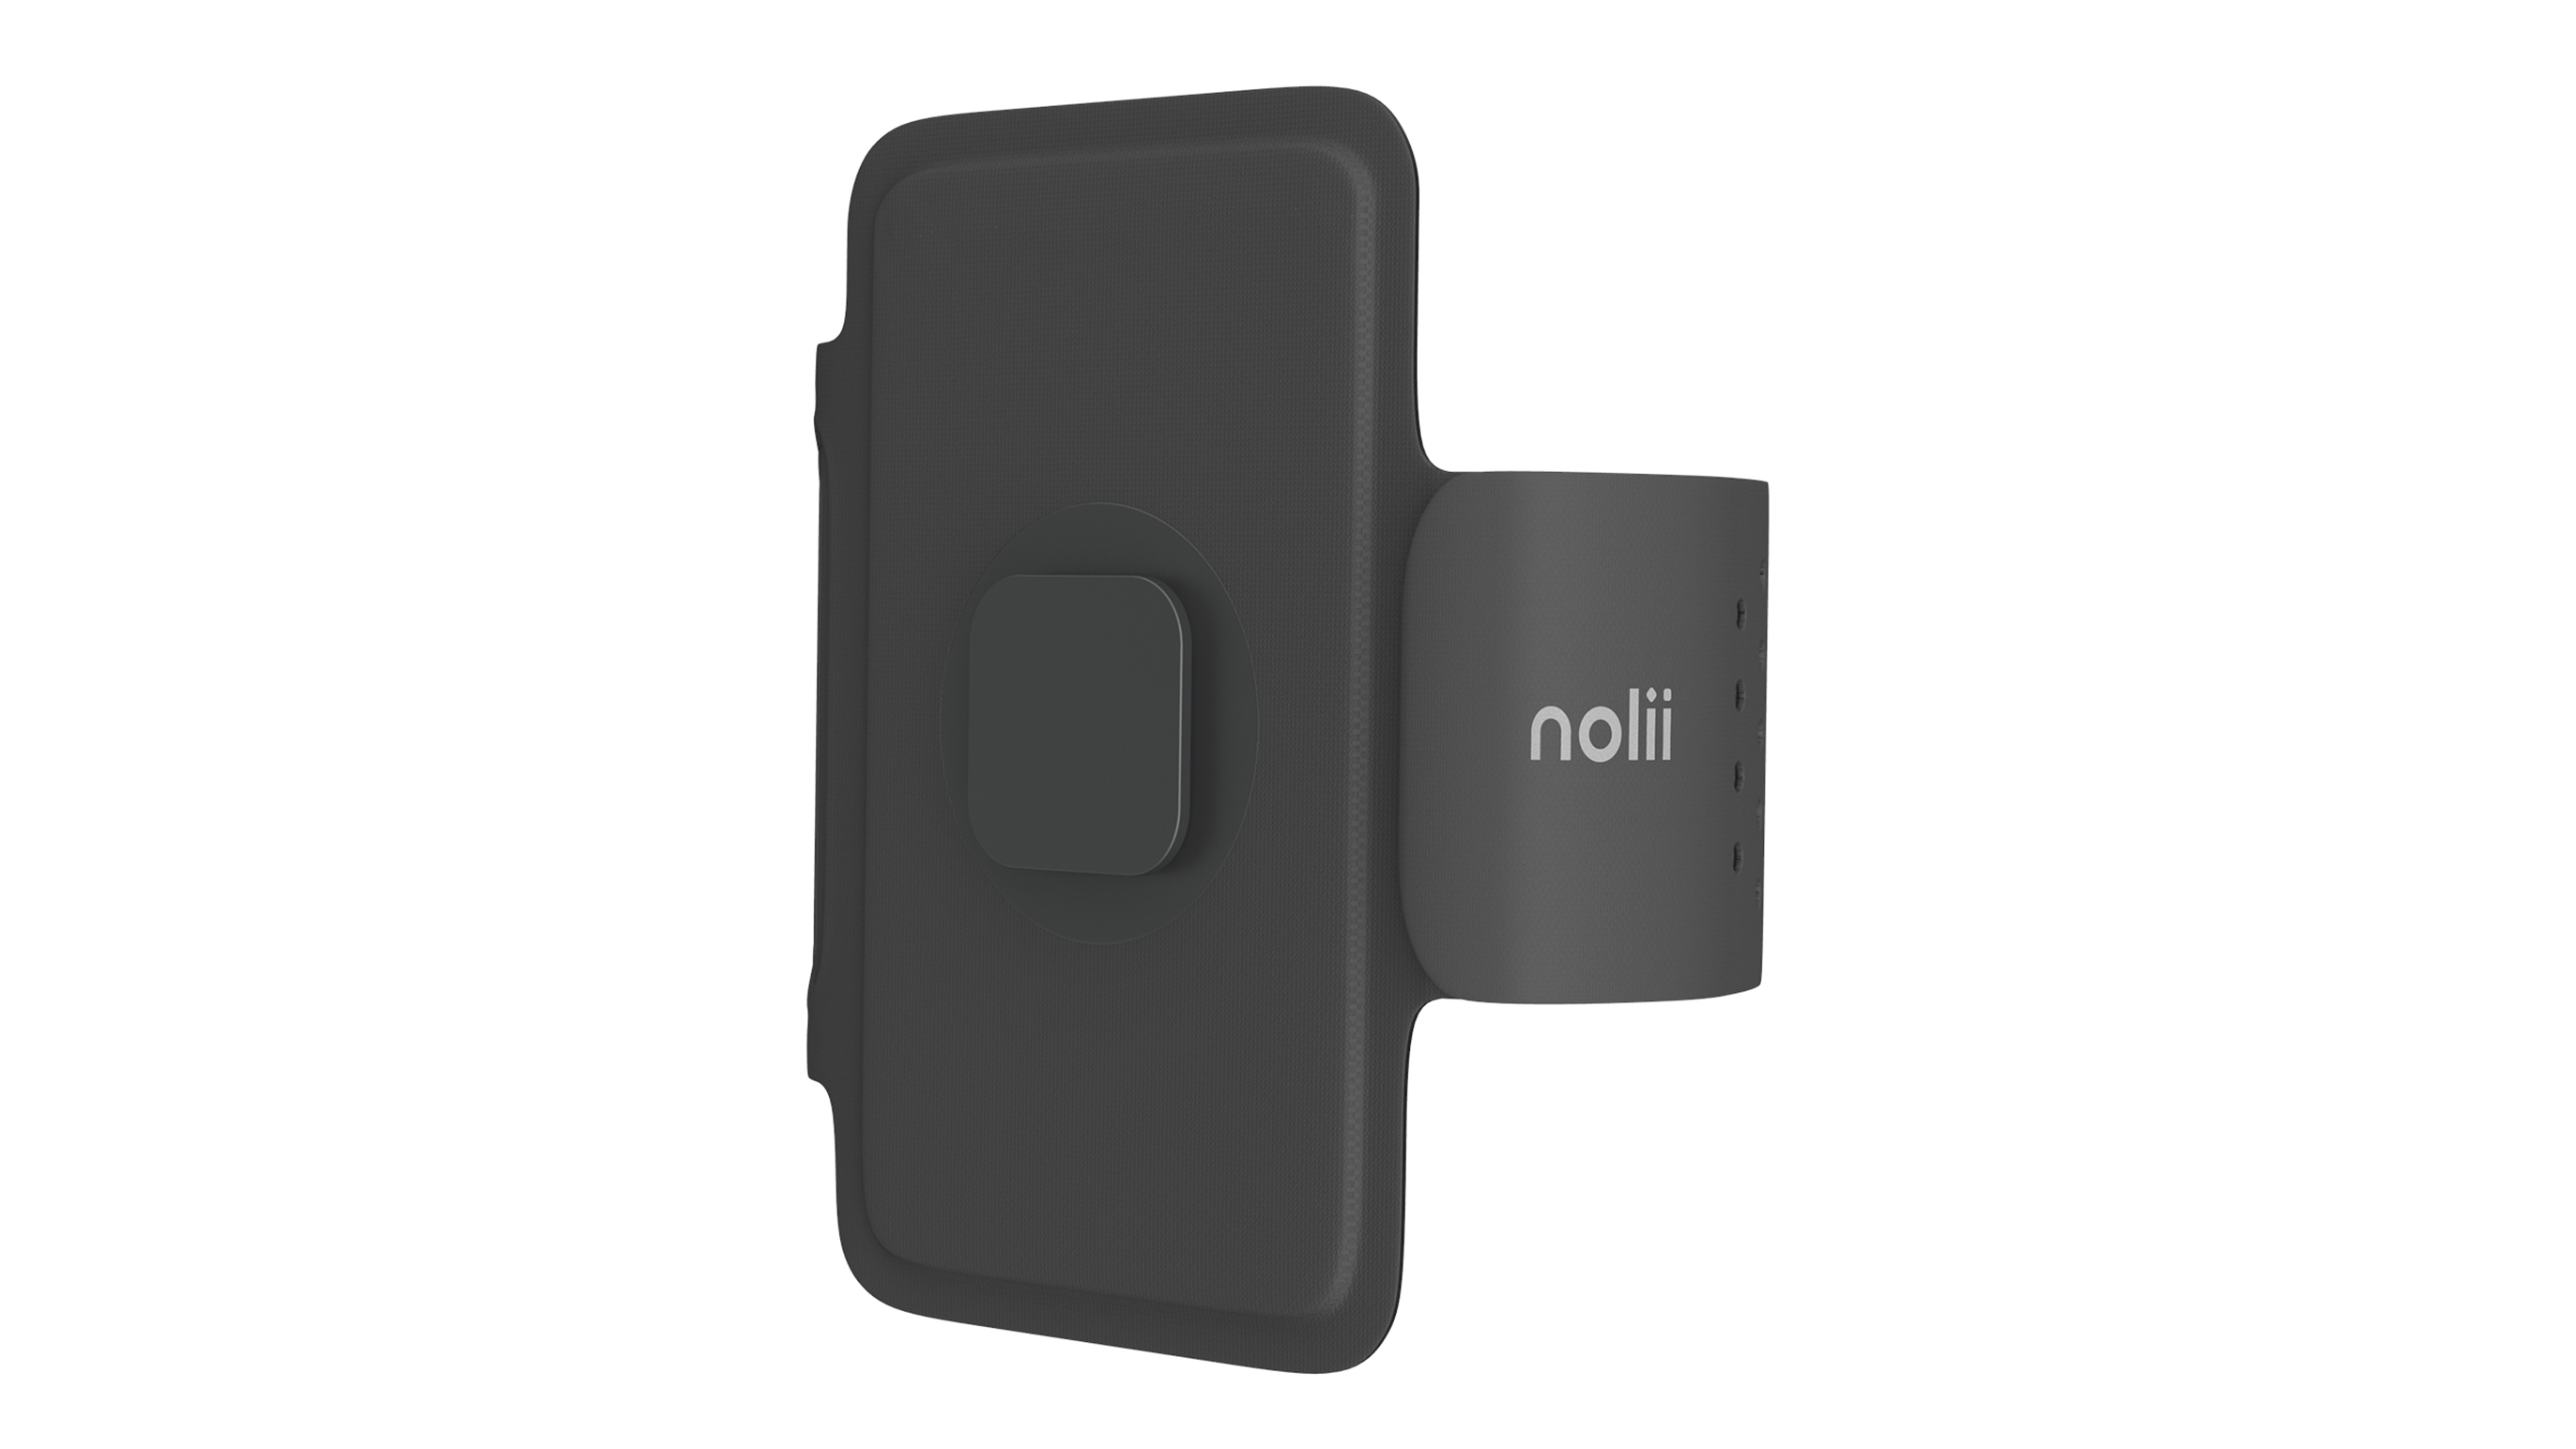 Fitness band by Nolii